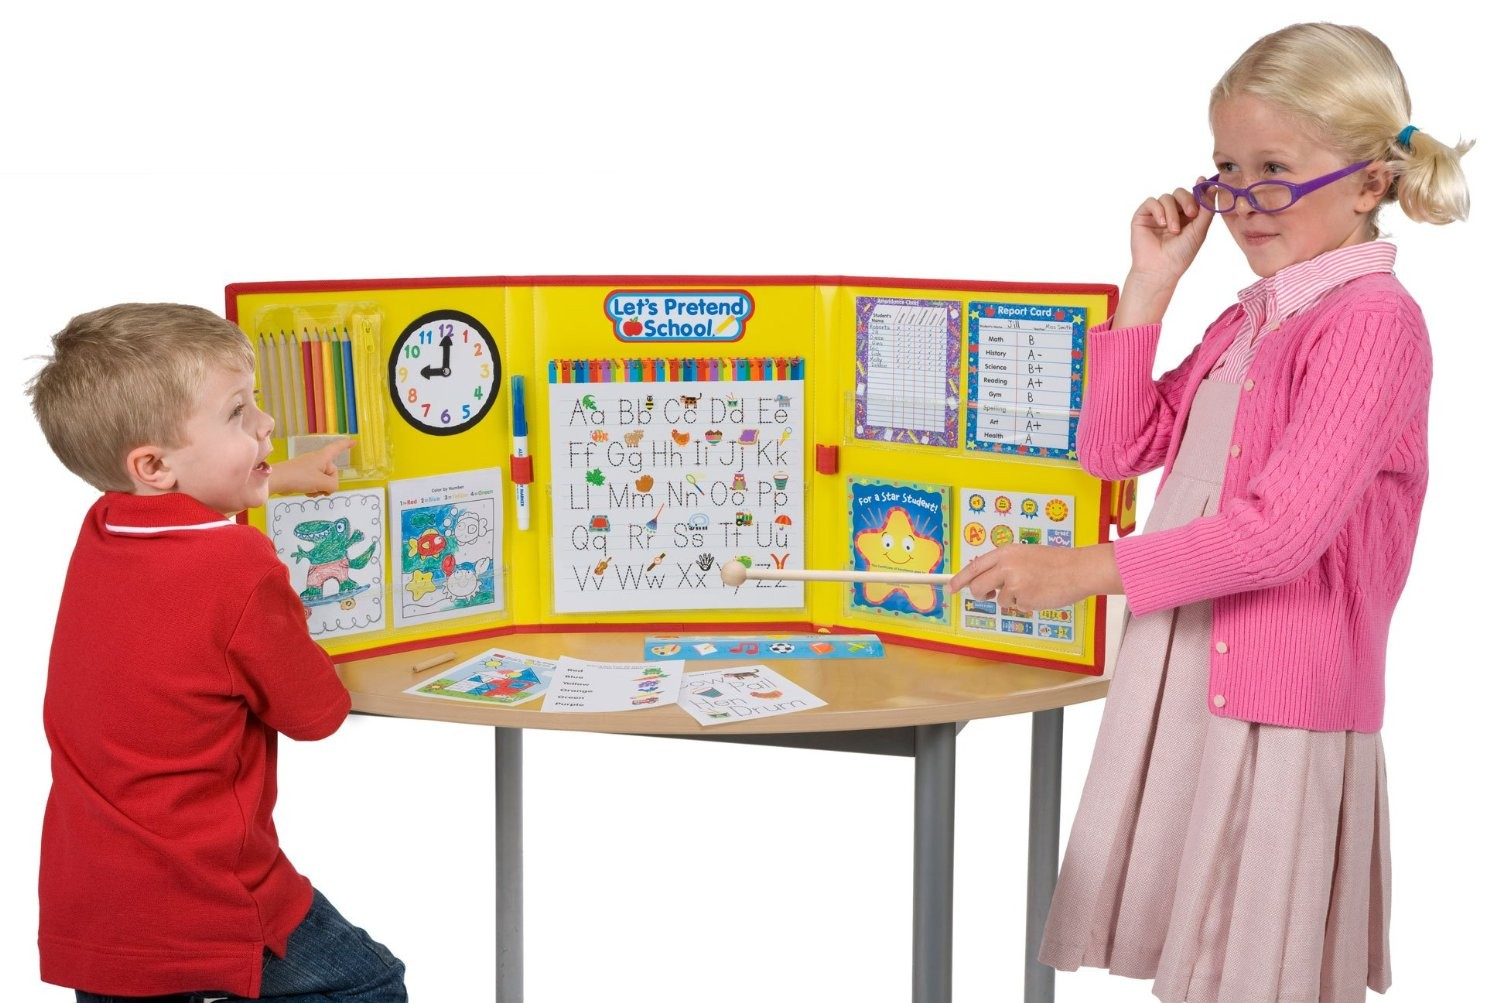 Toys For Teachers : Let s pretend school pc play set educational toys planet